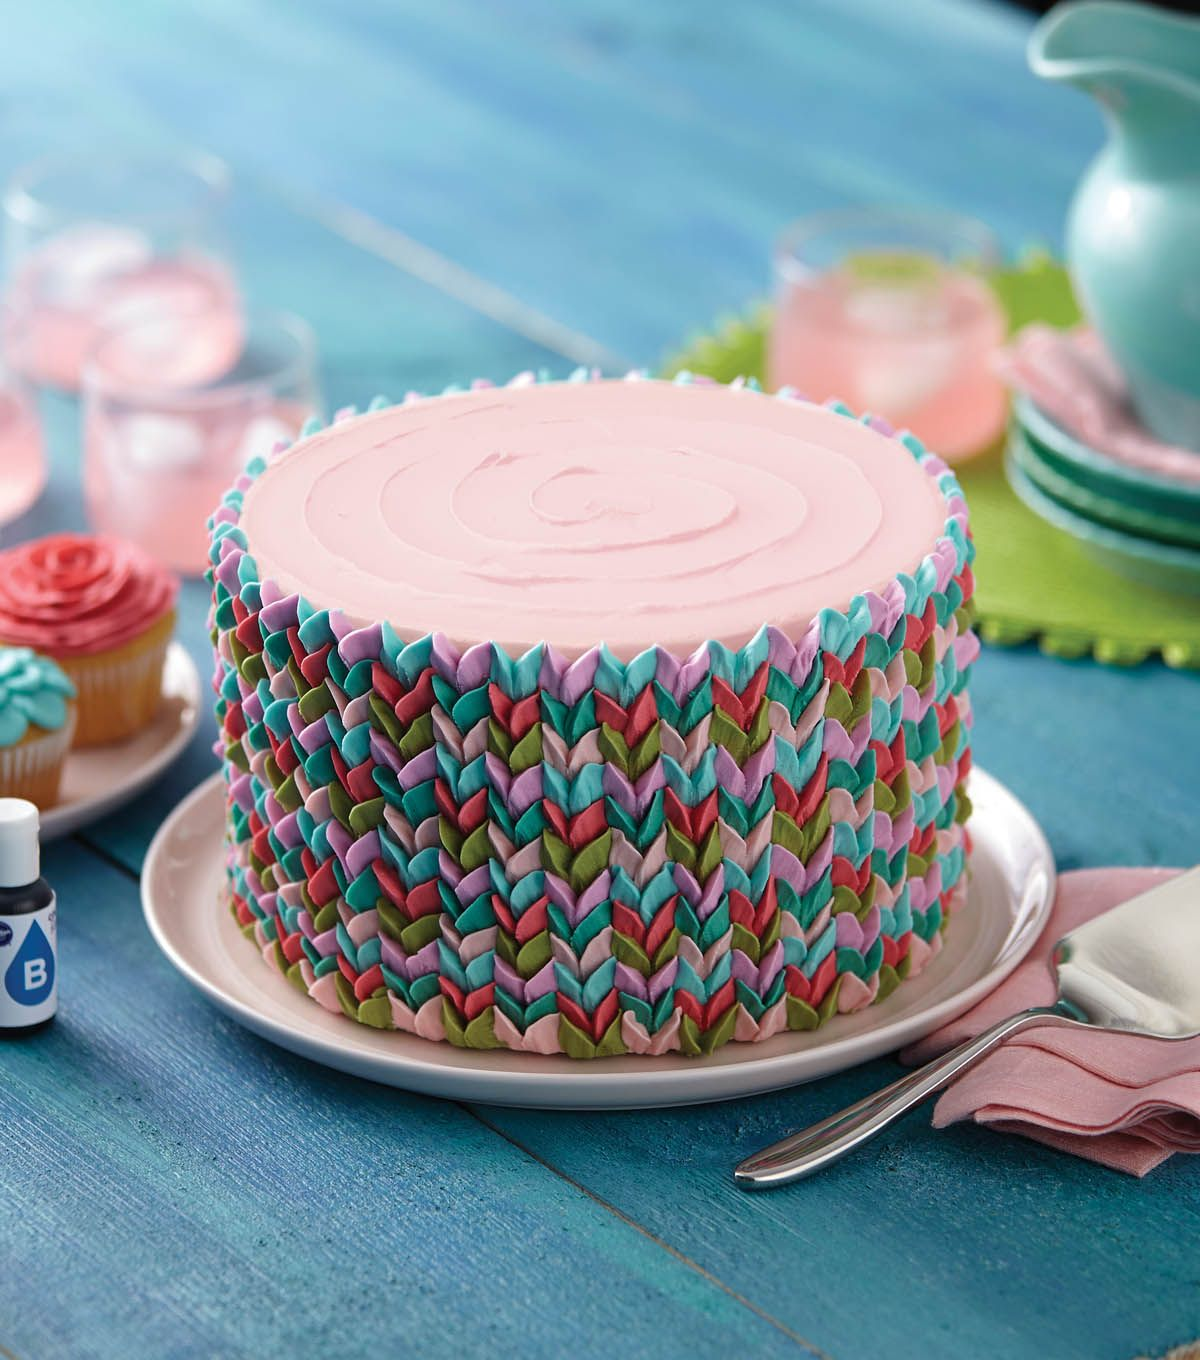 Knitting Cake Decorations : Learn how to make this beautiful and bright cake from